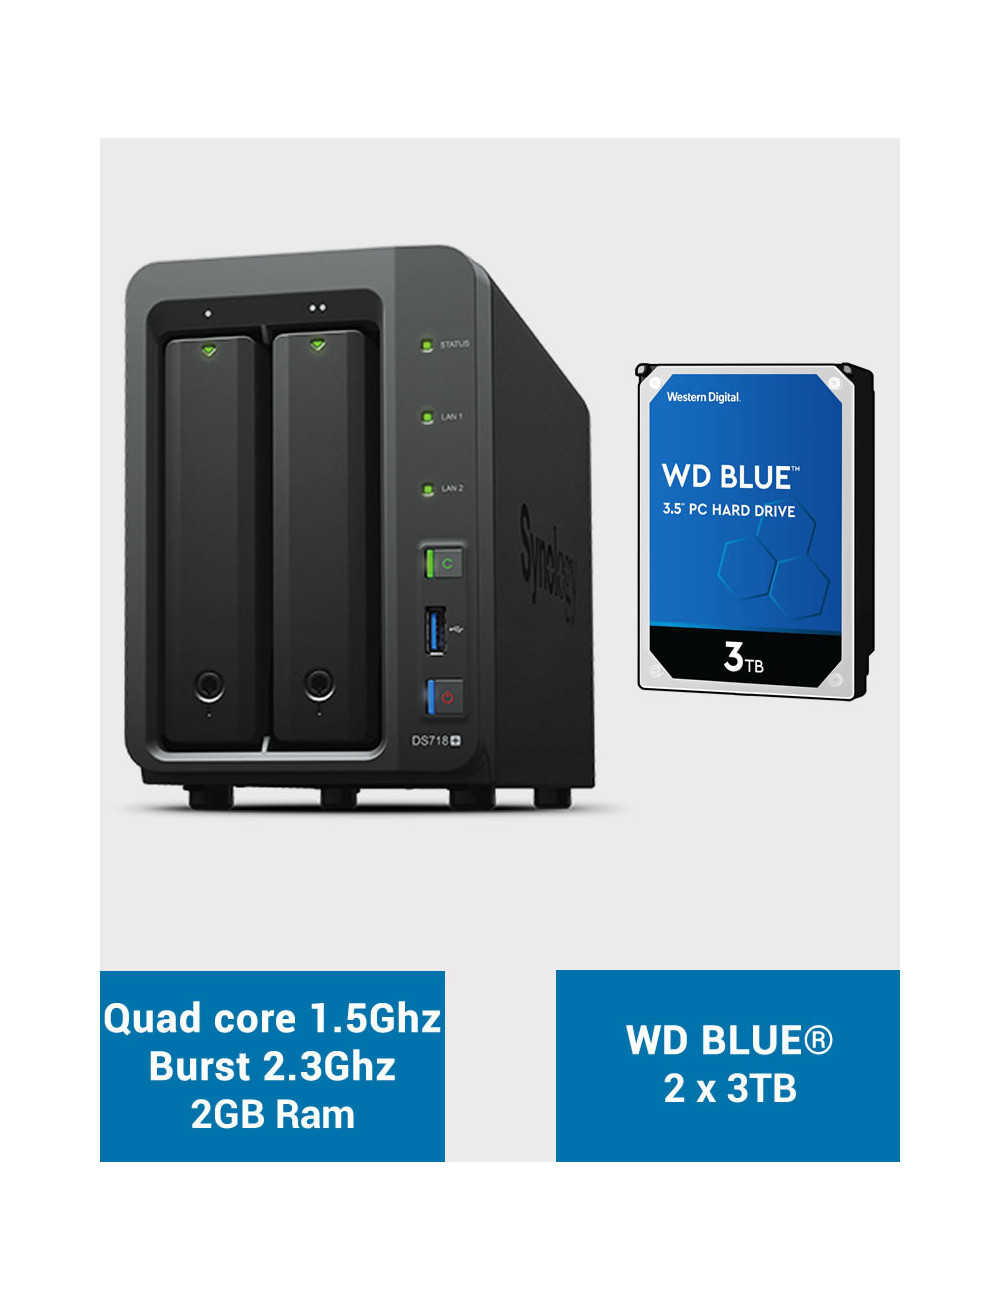 Synology DS718+ NAS Server WD BLUE 6TB (2x3TB)